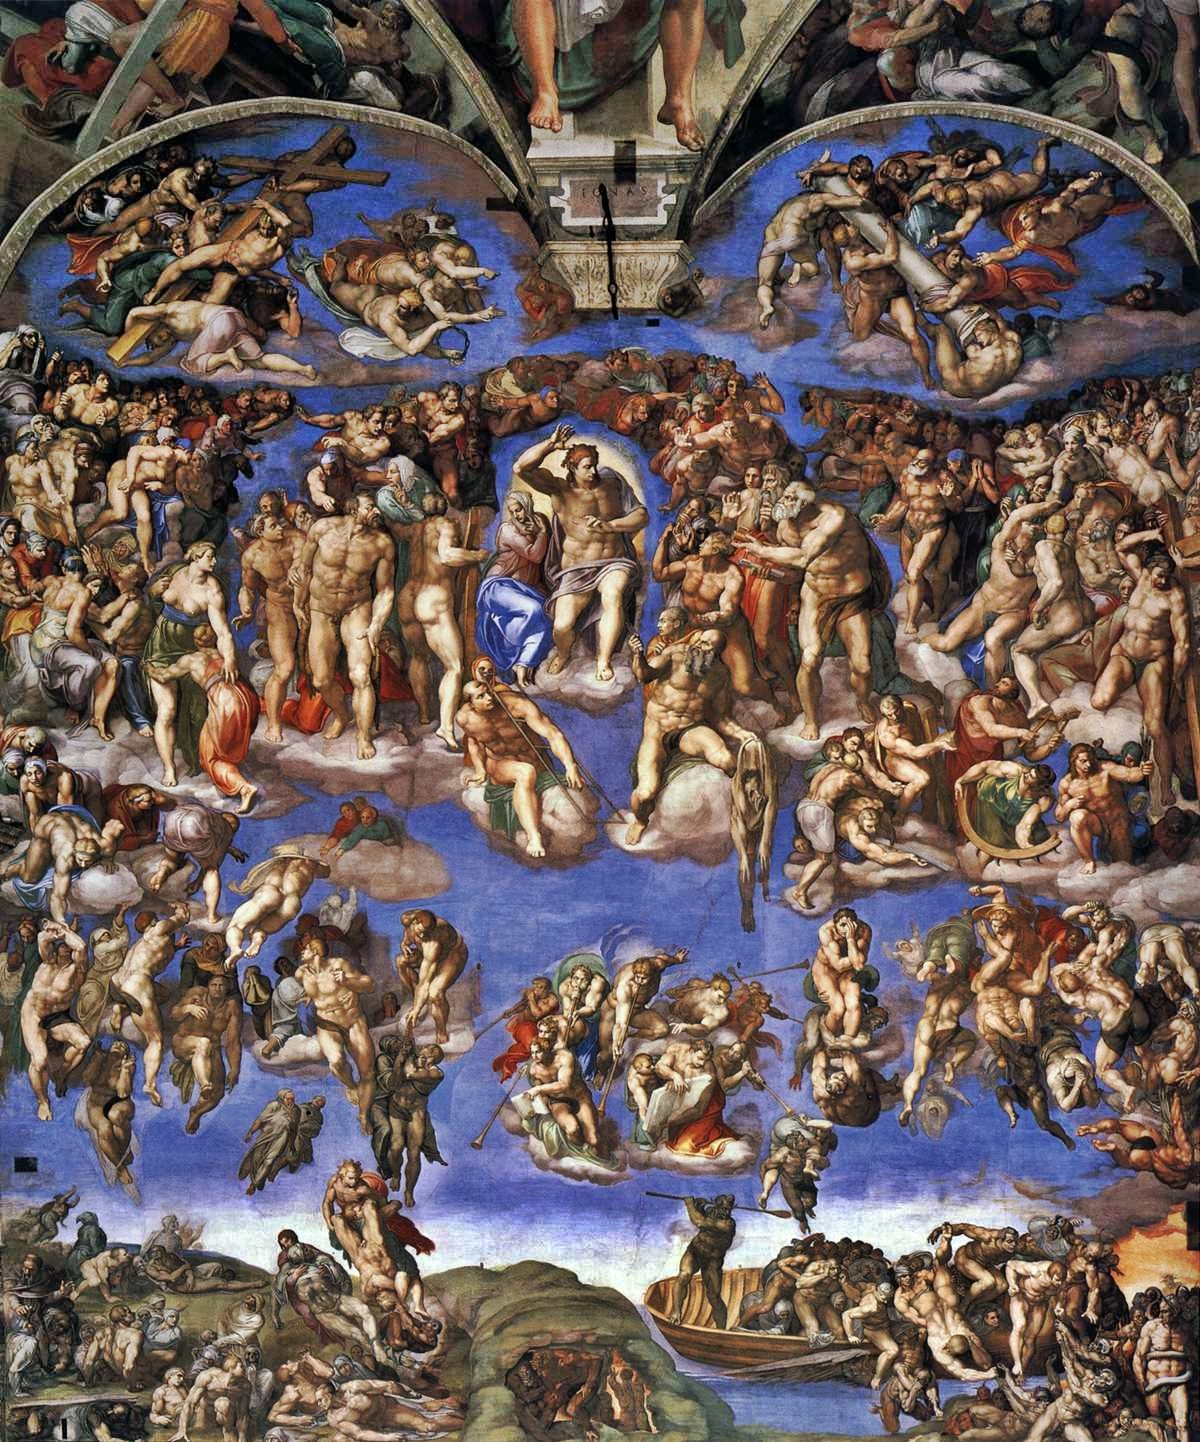 Hands Almost Touching Painting : hands, almost, touching, painting, Sistine, Chapel:, Judgment, History